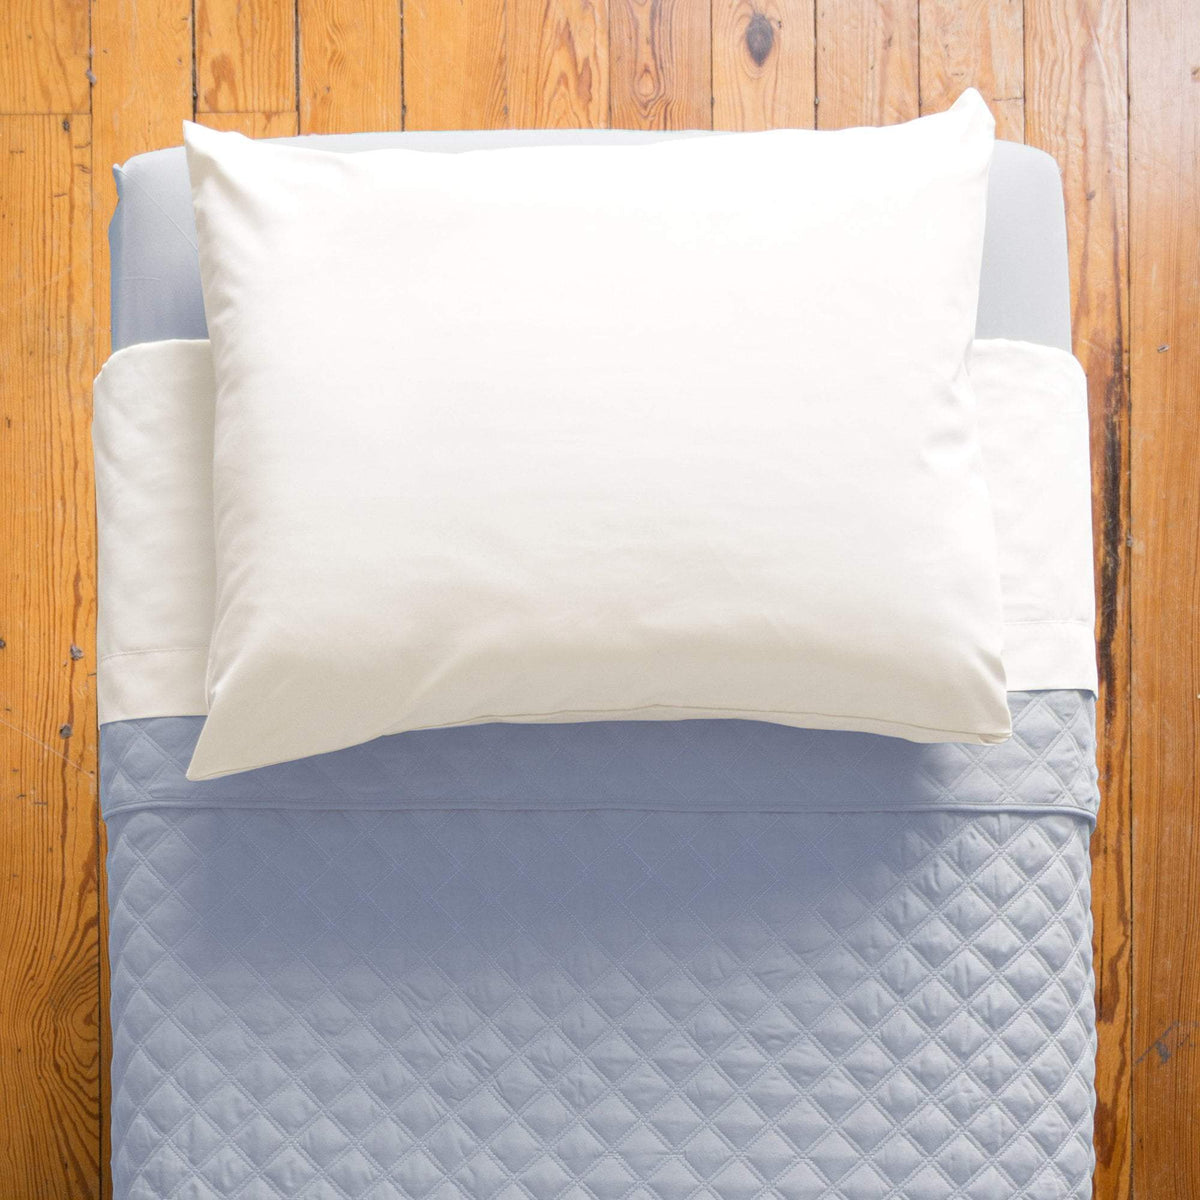 Sposh Standard Microfiber Pillow Case